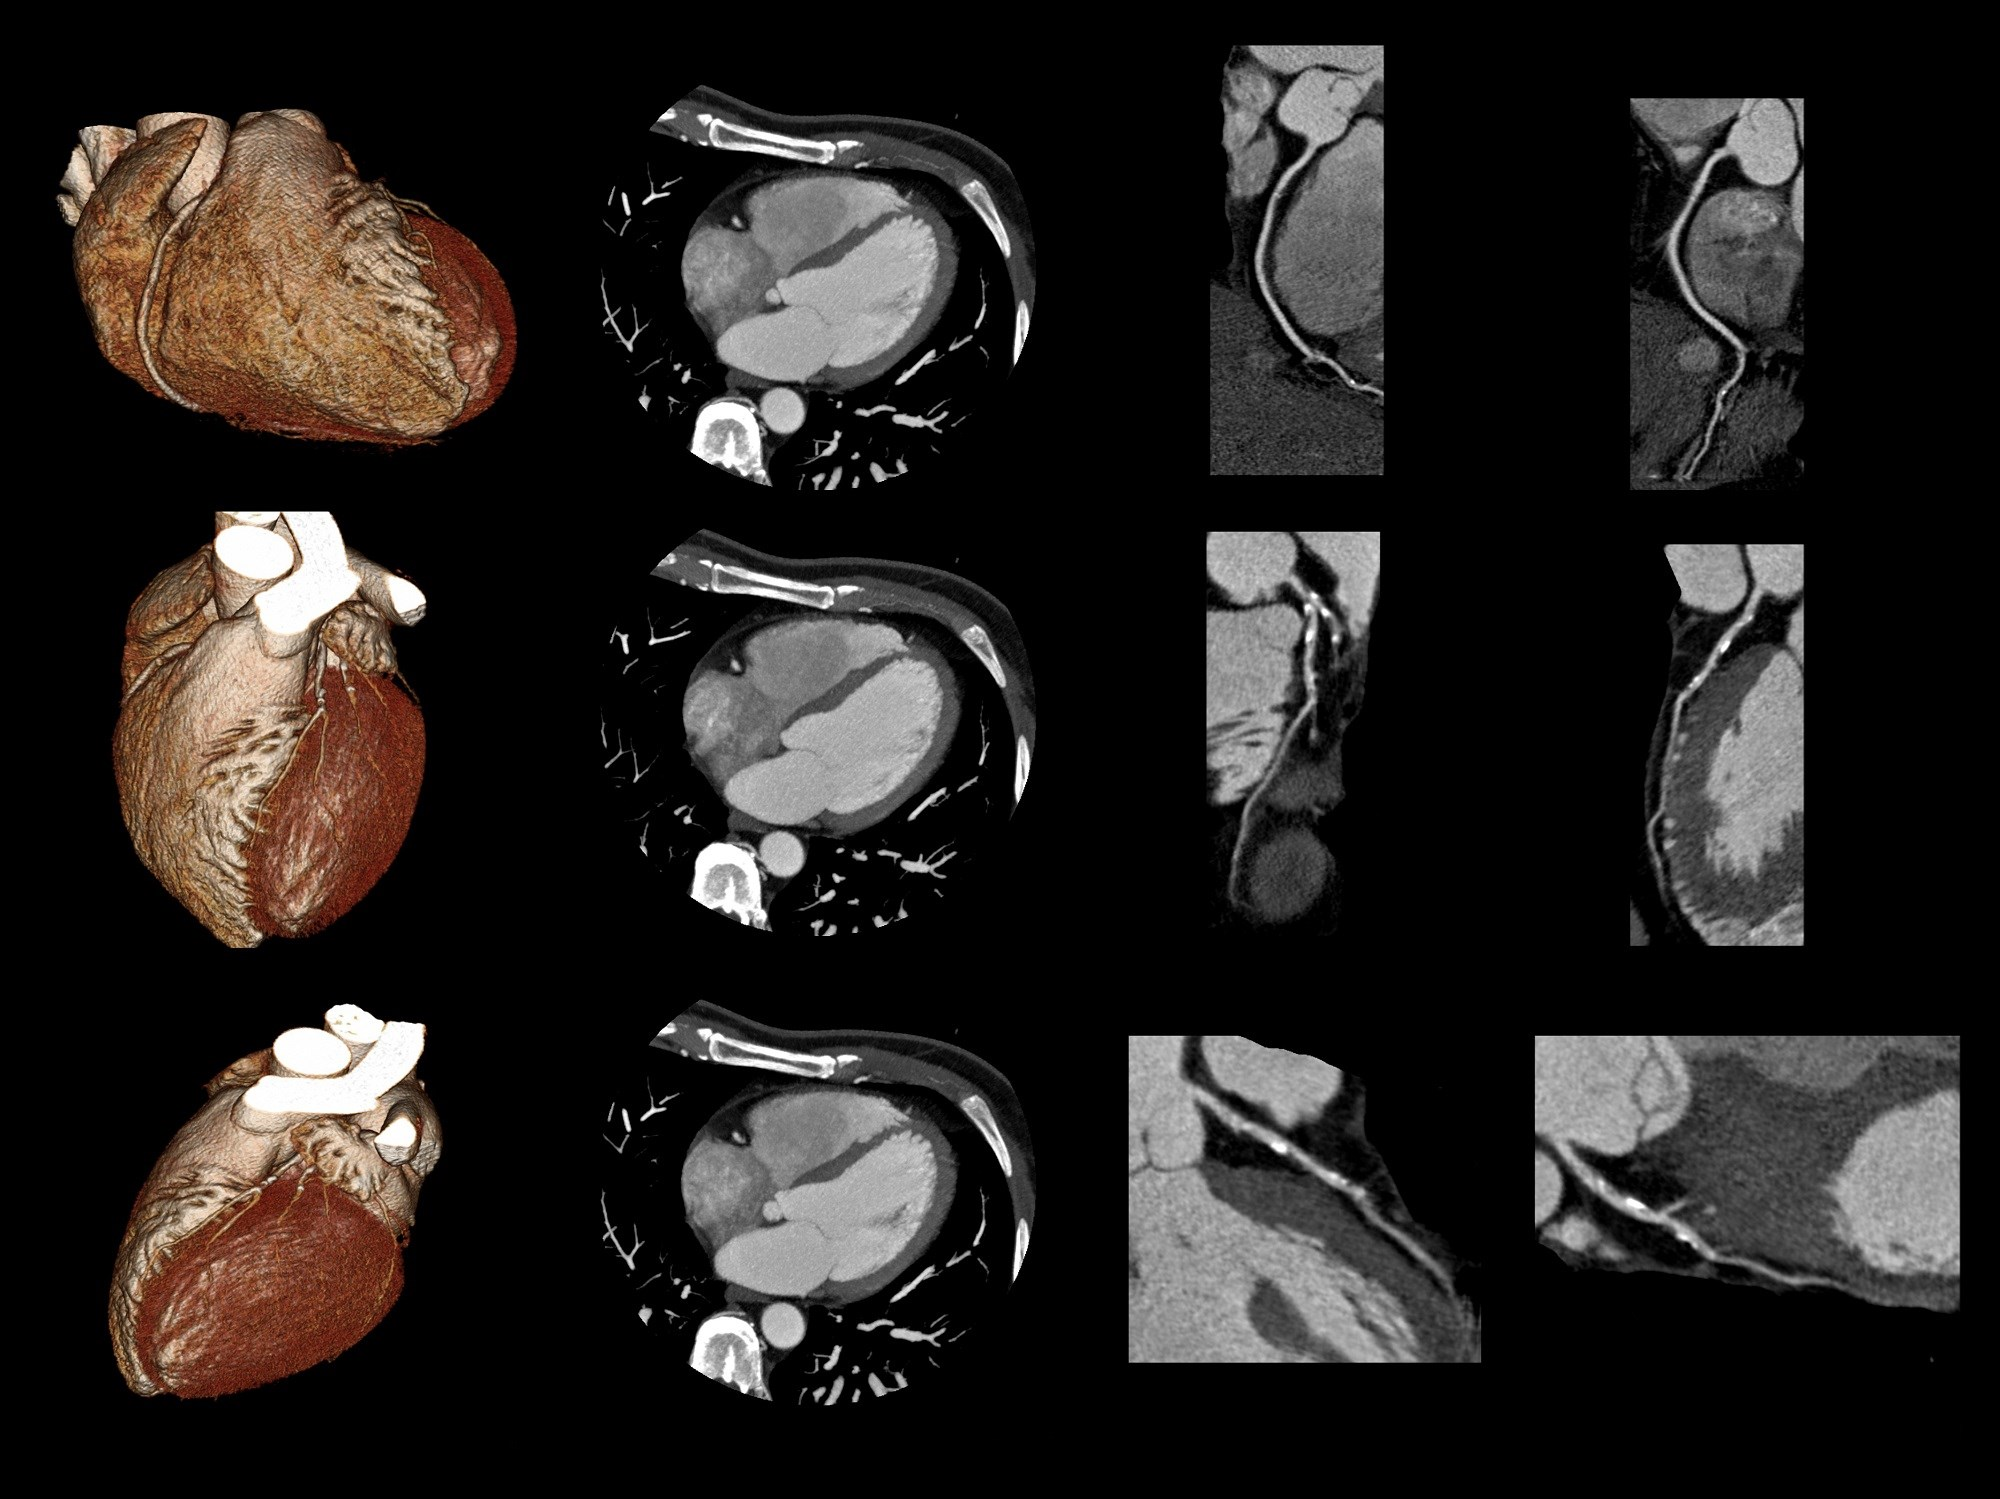 High perivascular fat attenuation index values are important markers of increased cardiac mortality.